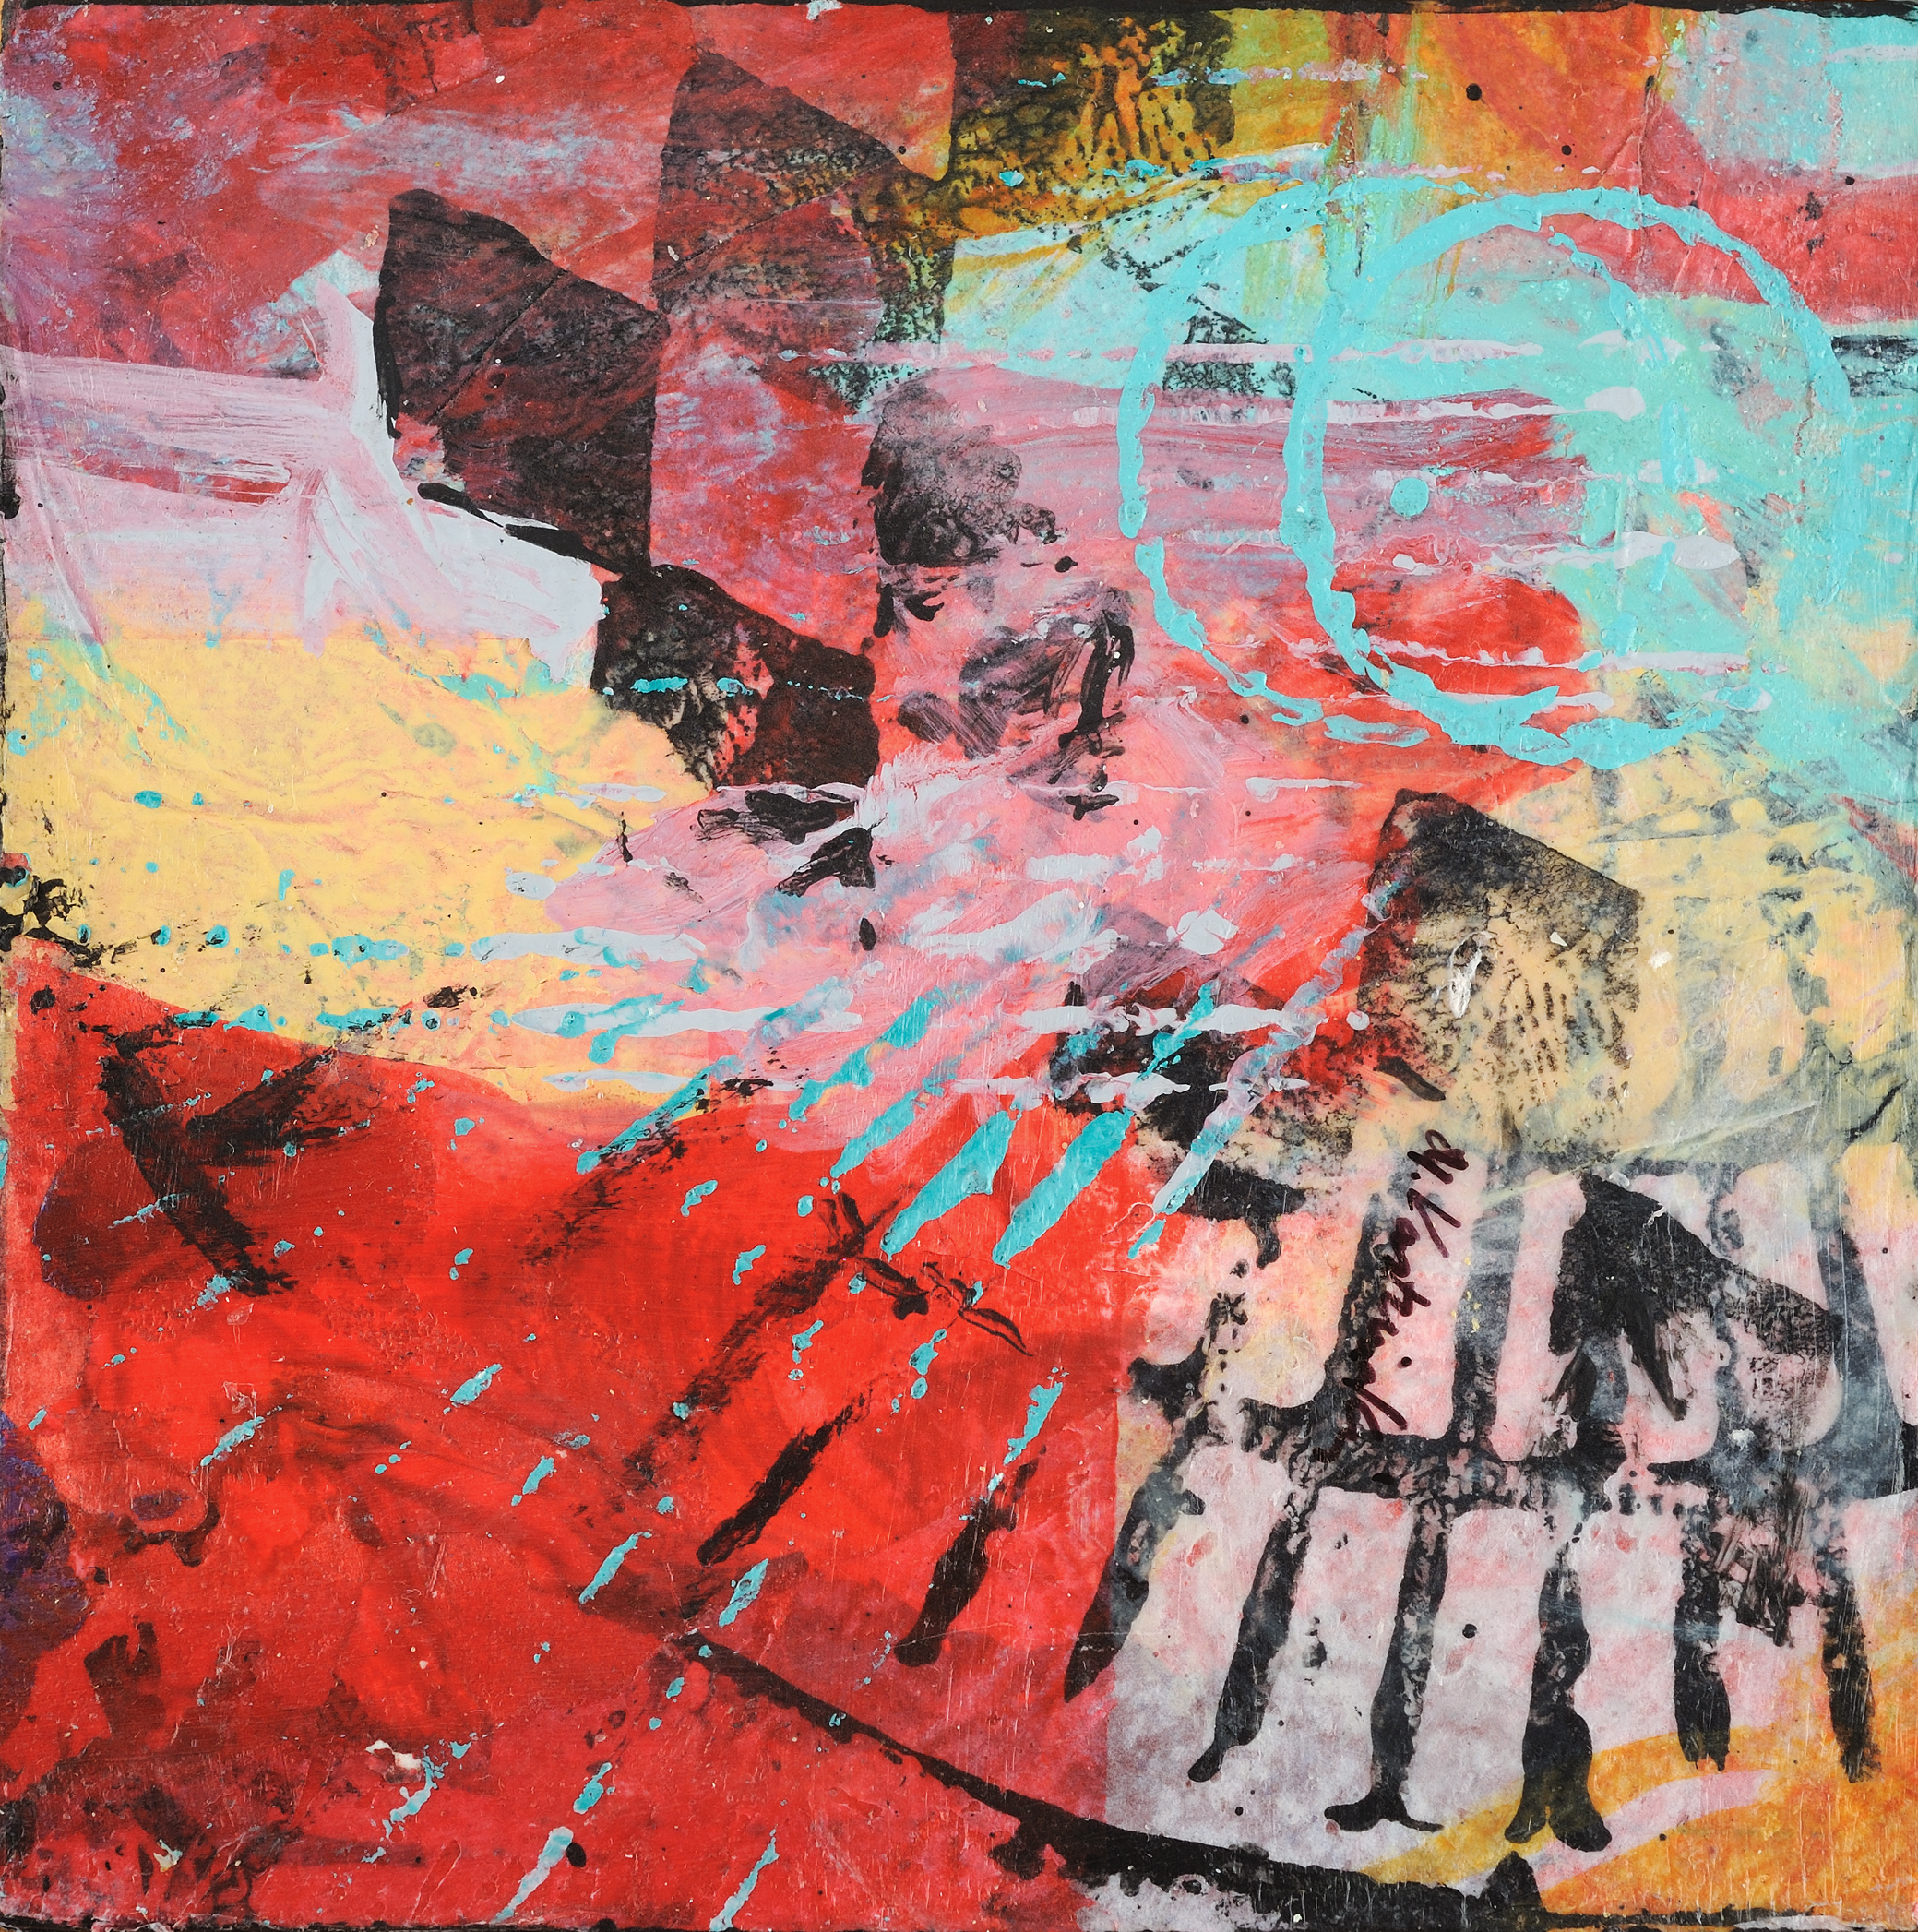 art spots abstract red-teal 1 of 4.jpg